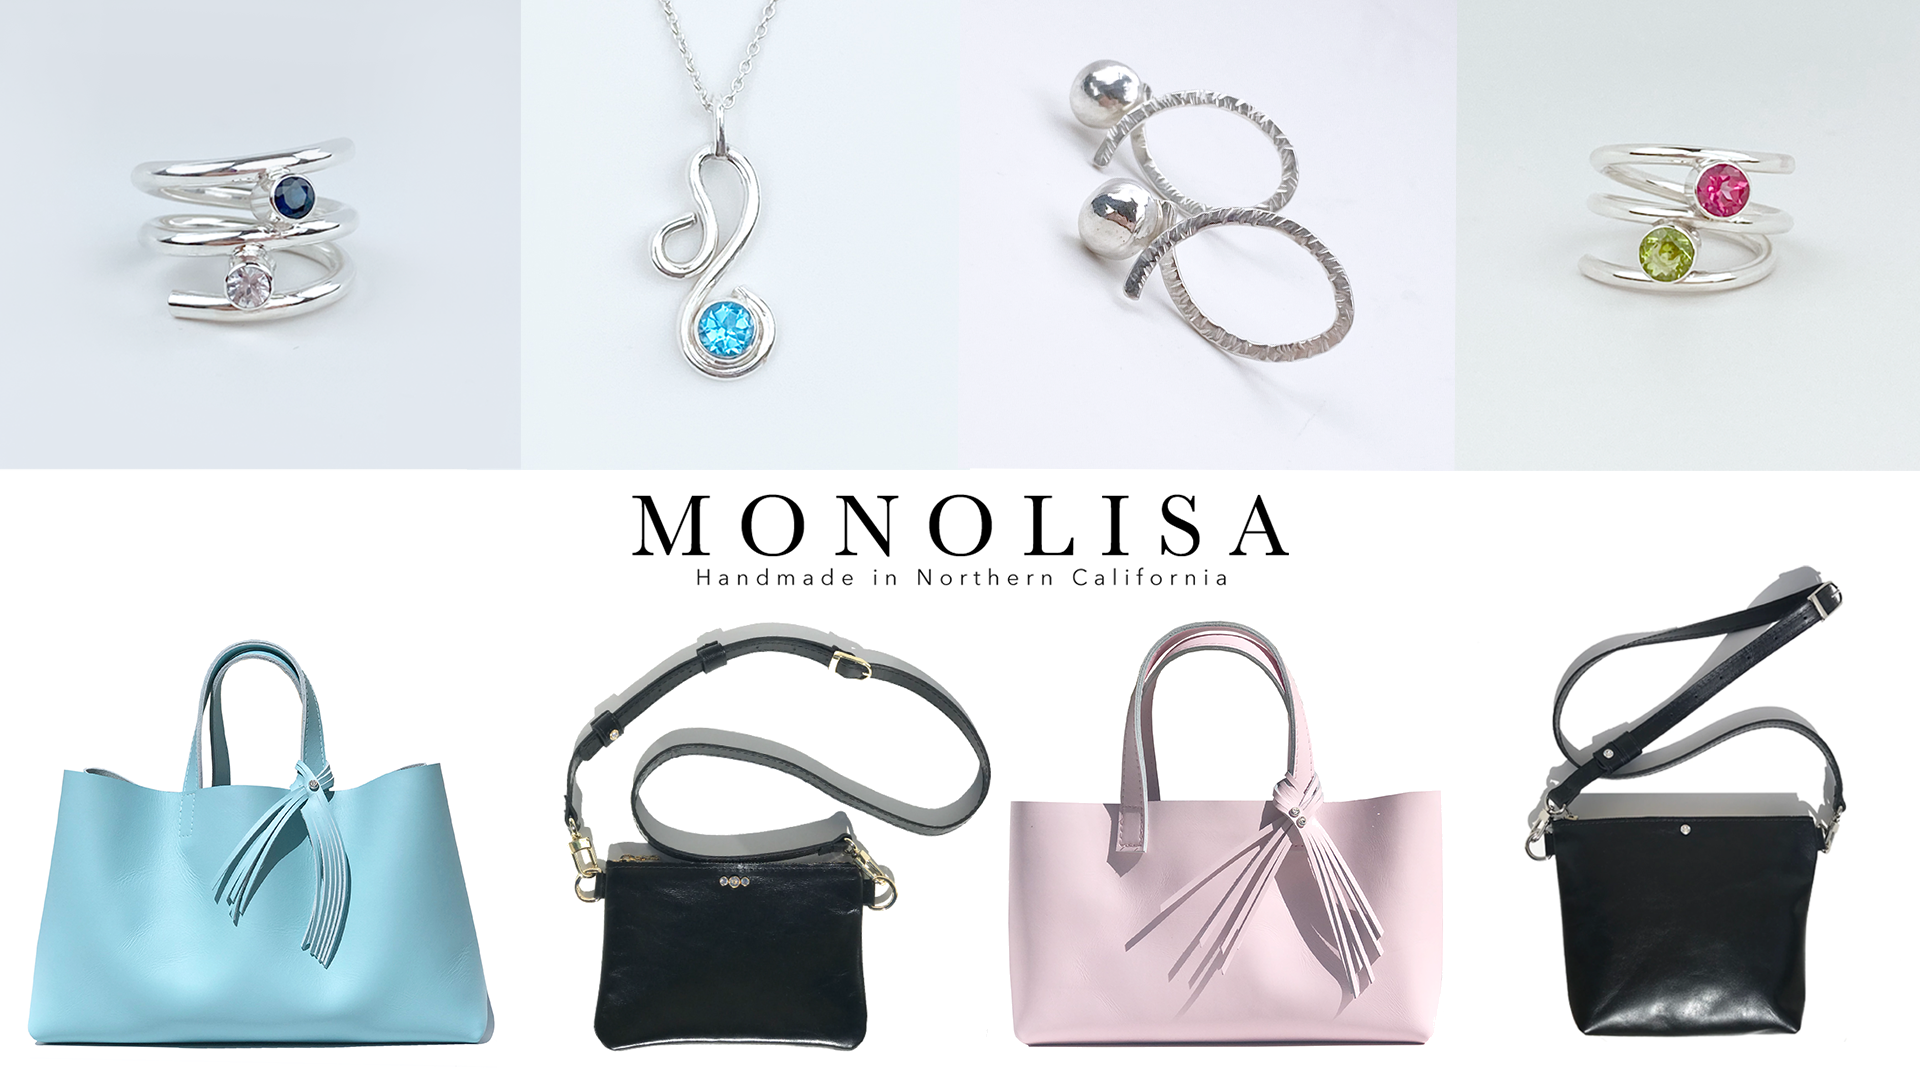 MONOLISA Handbag and Jewelry Collection - Limited Editions | One of a Kind Designs by California Designer Lisa Ramos